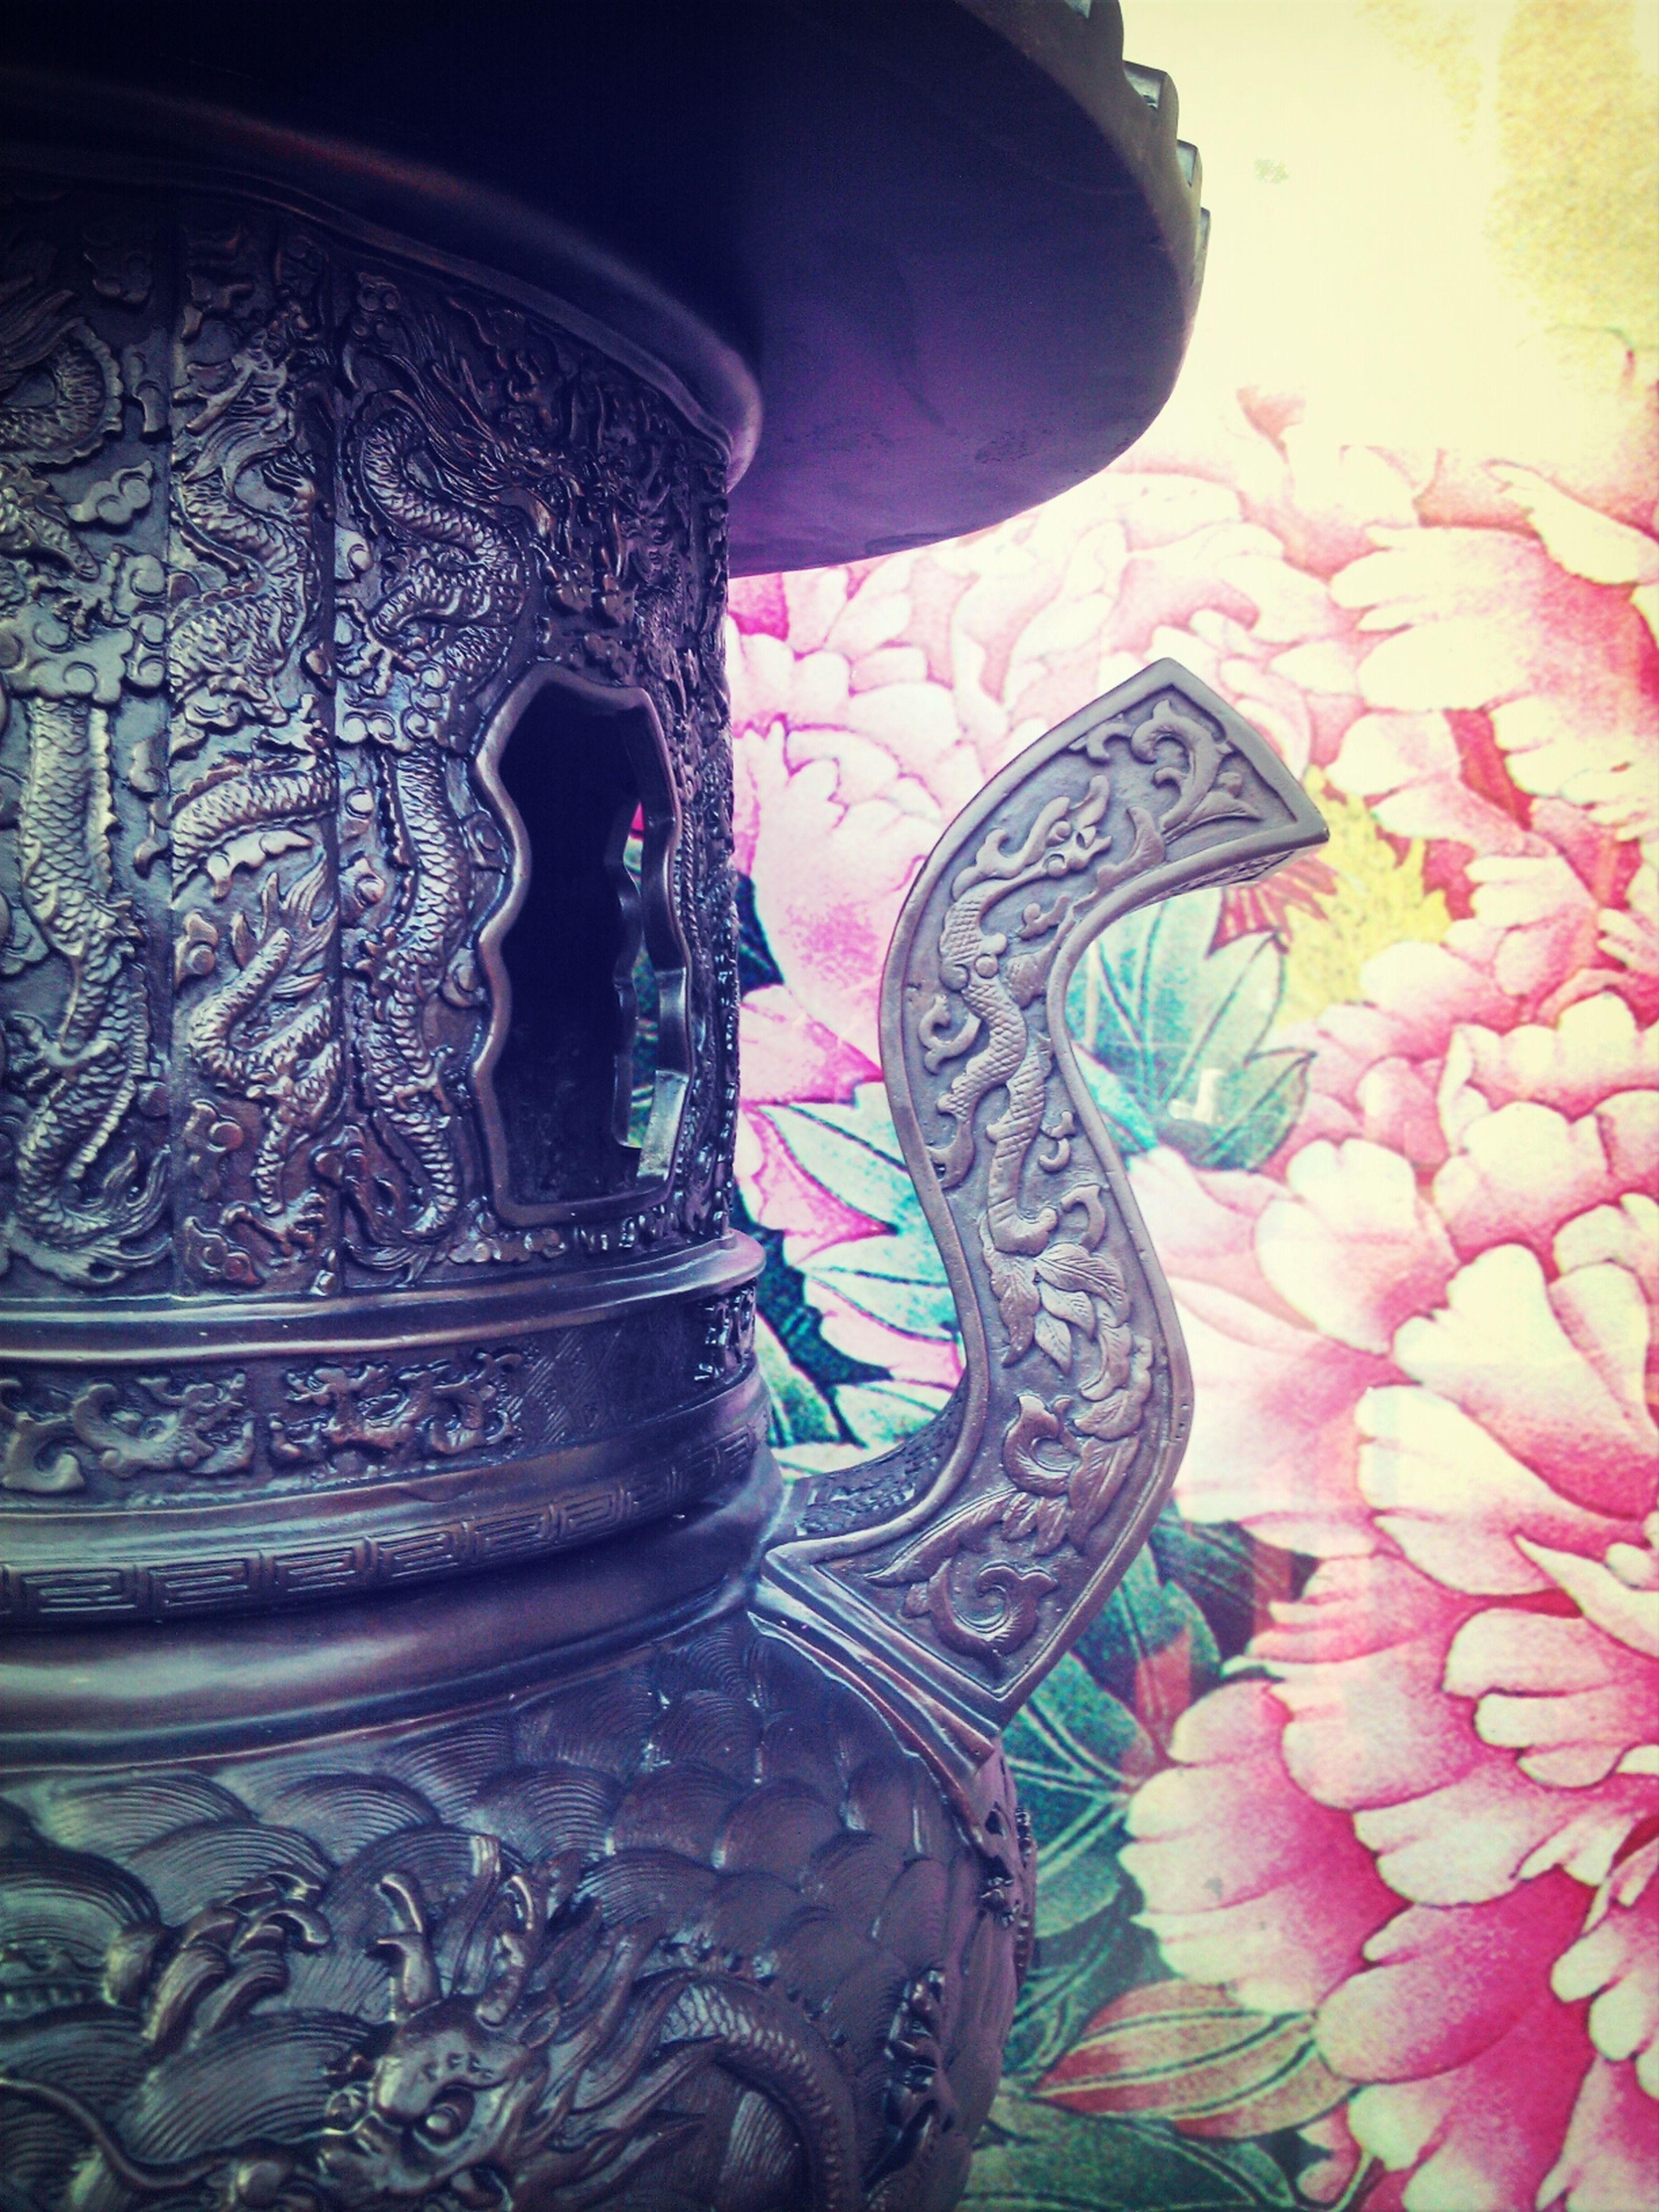 art and craft, art, creativity, flower, statue, sculpture, wall - building feature, indoors, ornate, animal representation, human representation, carving - craft product, design, decoration, close-up, built structure, floral pattern, architecture, no people